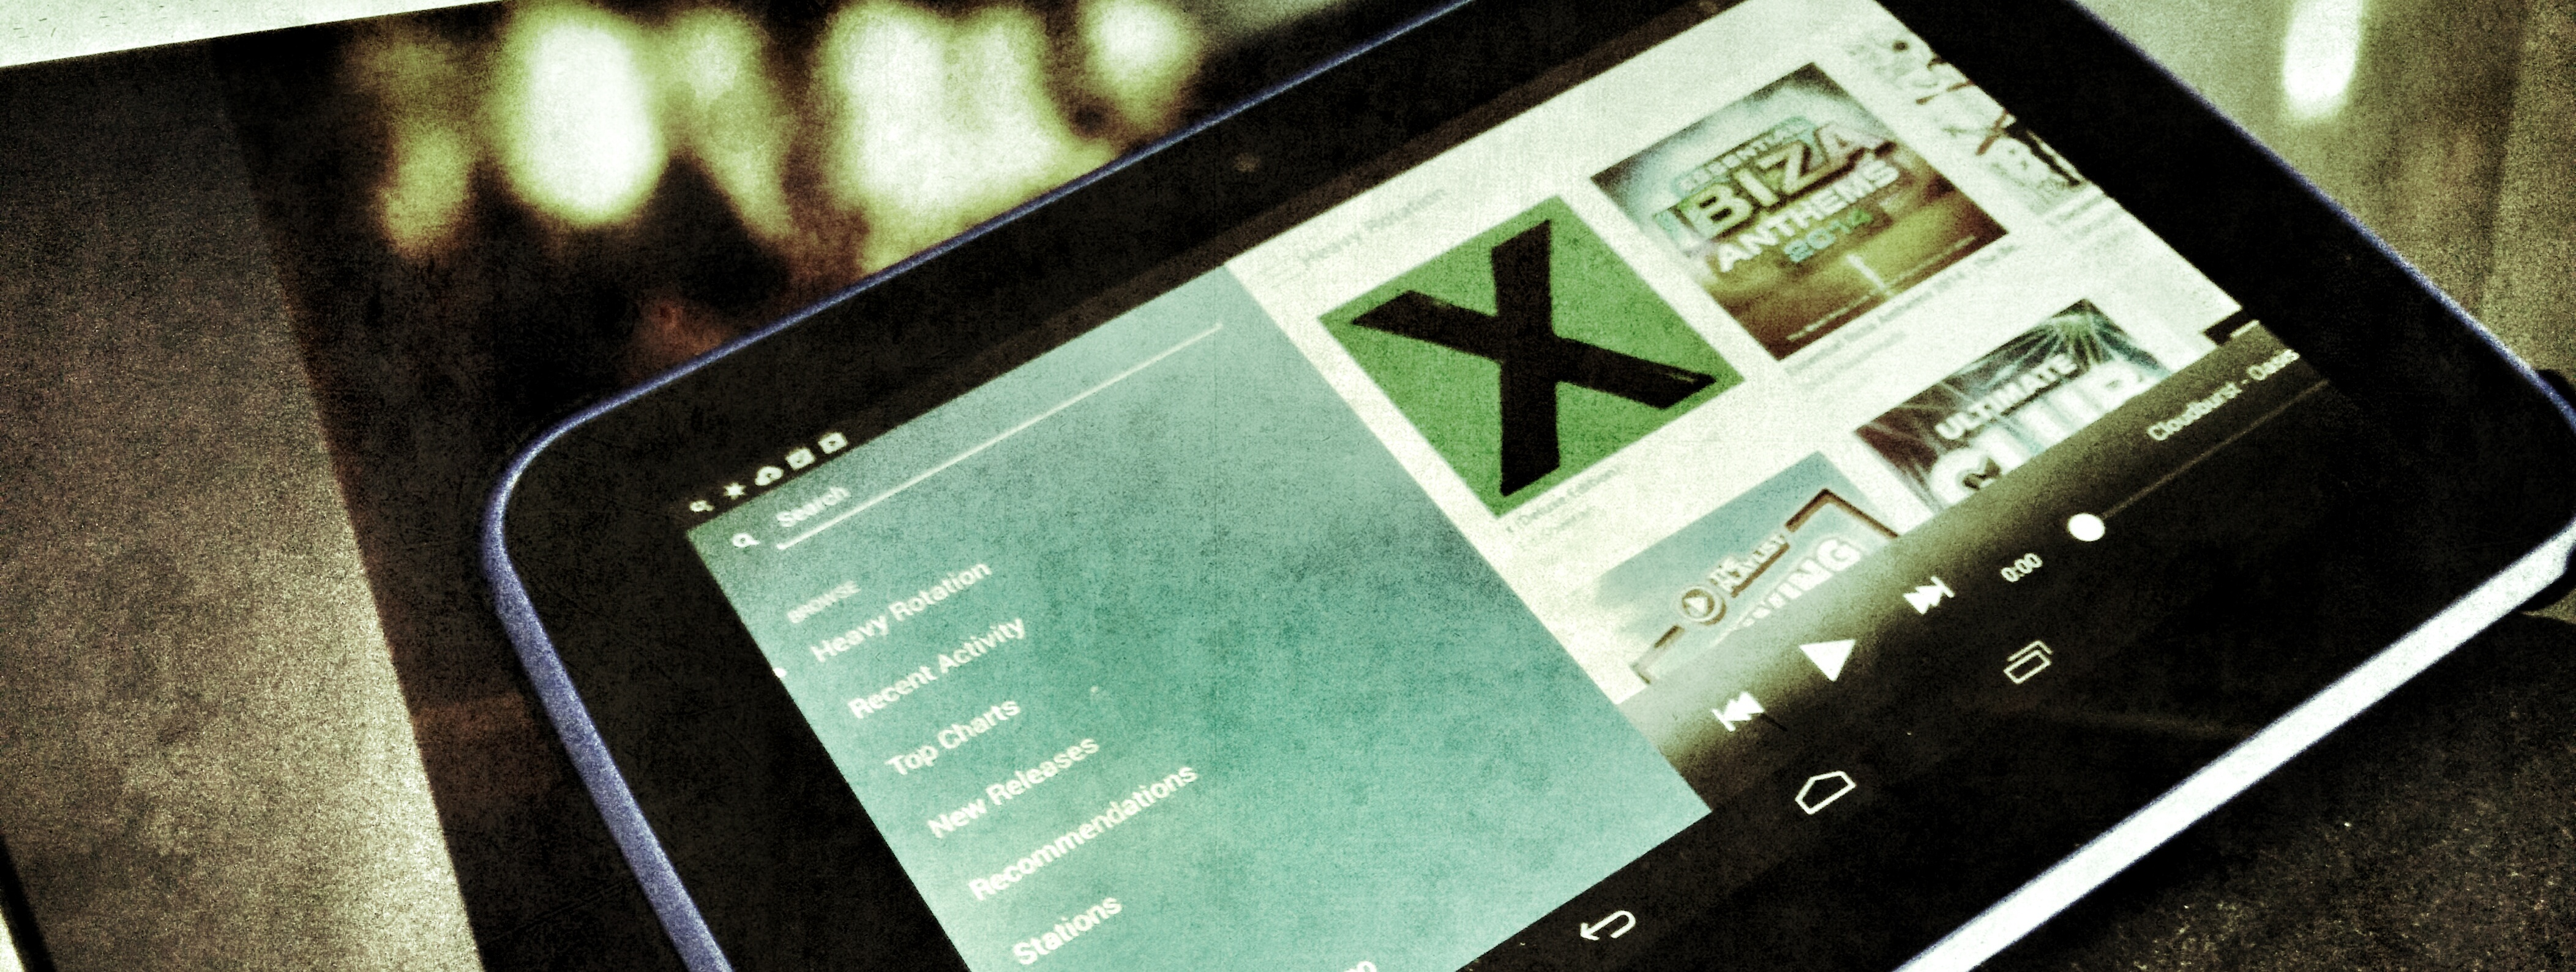 9 On-Demand Music Streaming Services Compared